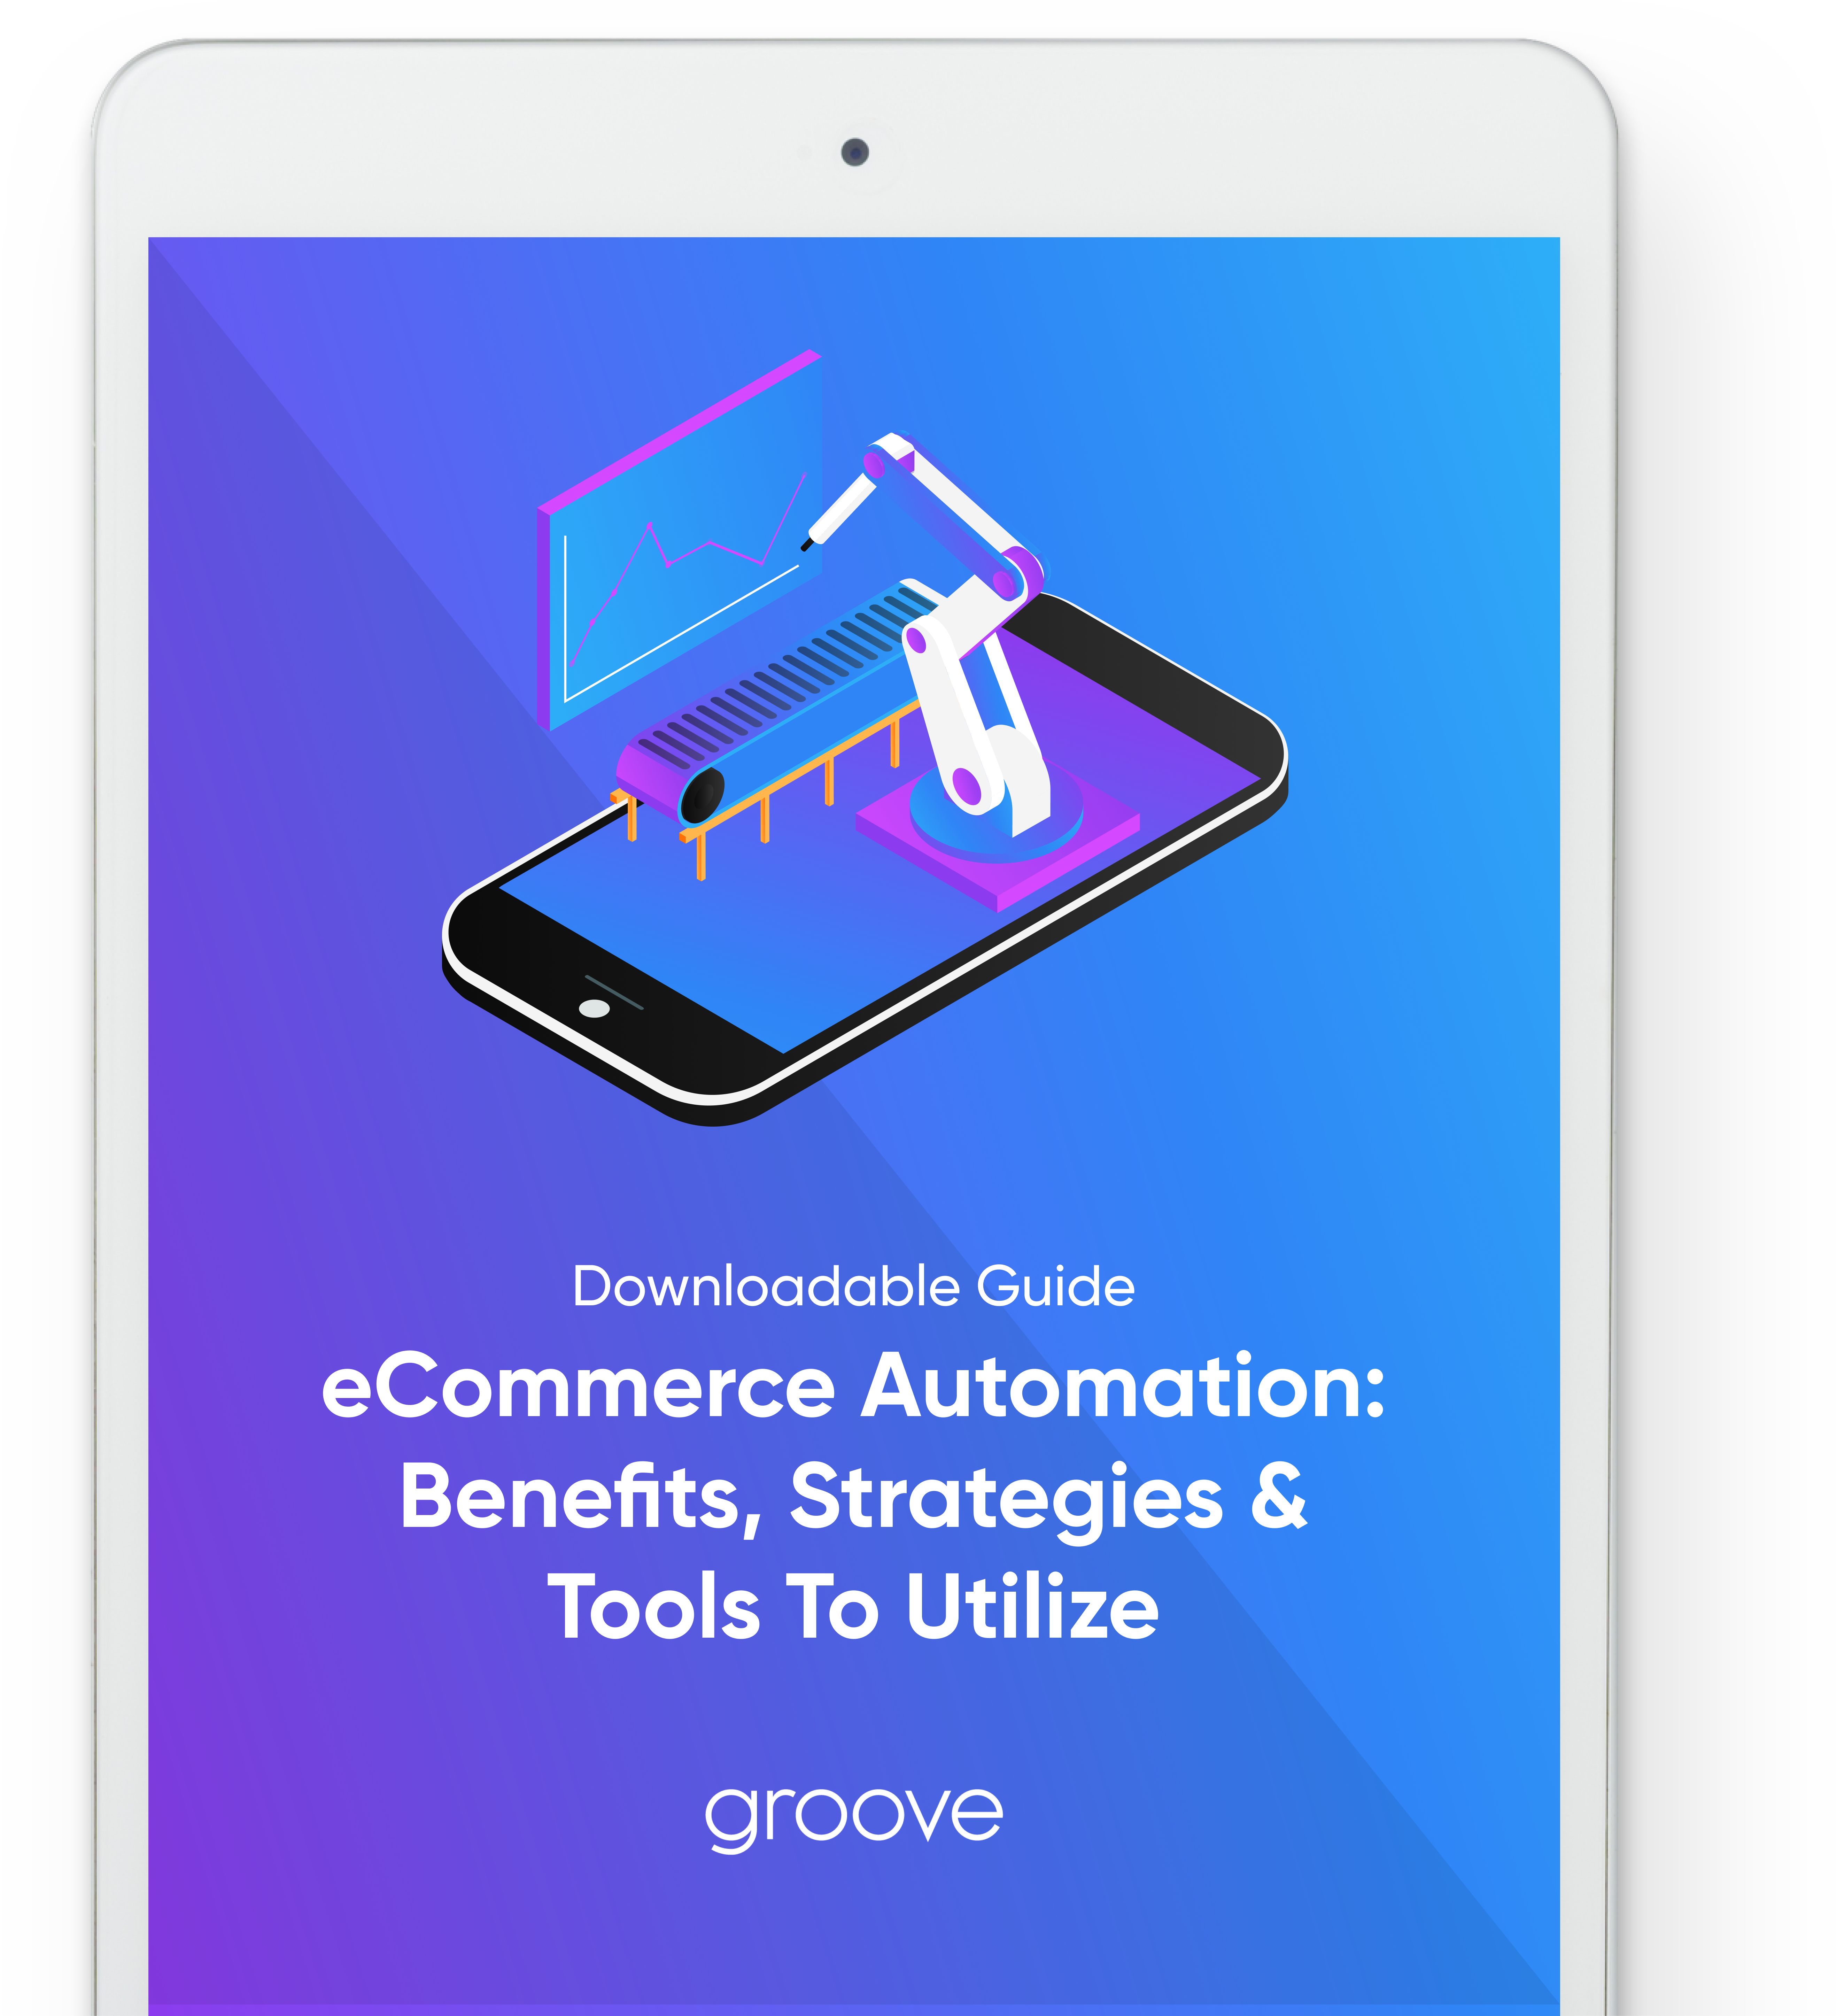 eCommerce Automation: Benefits, Strategies & Tools To Utilize